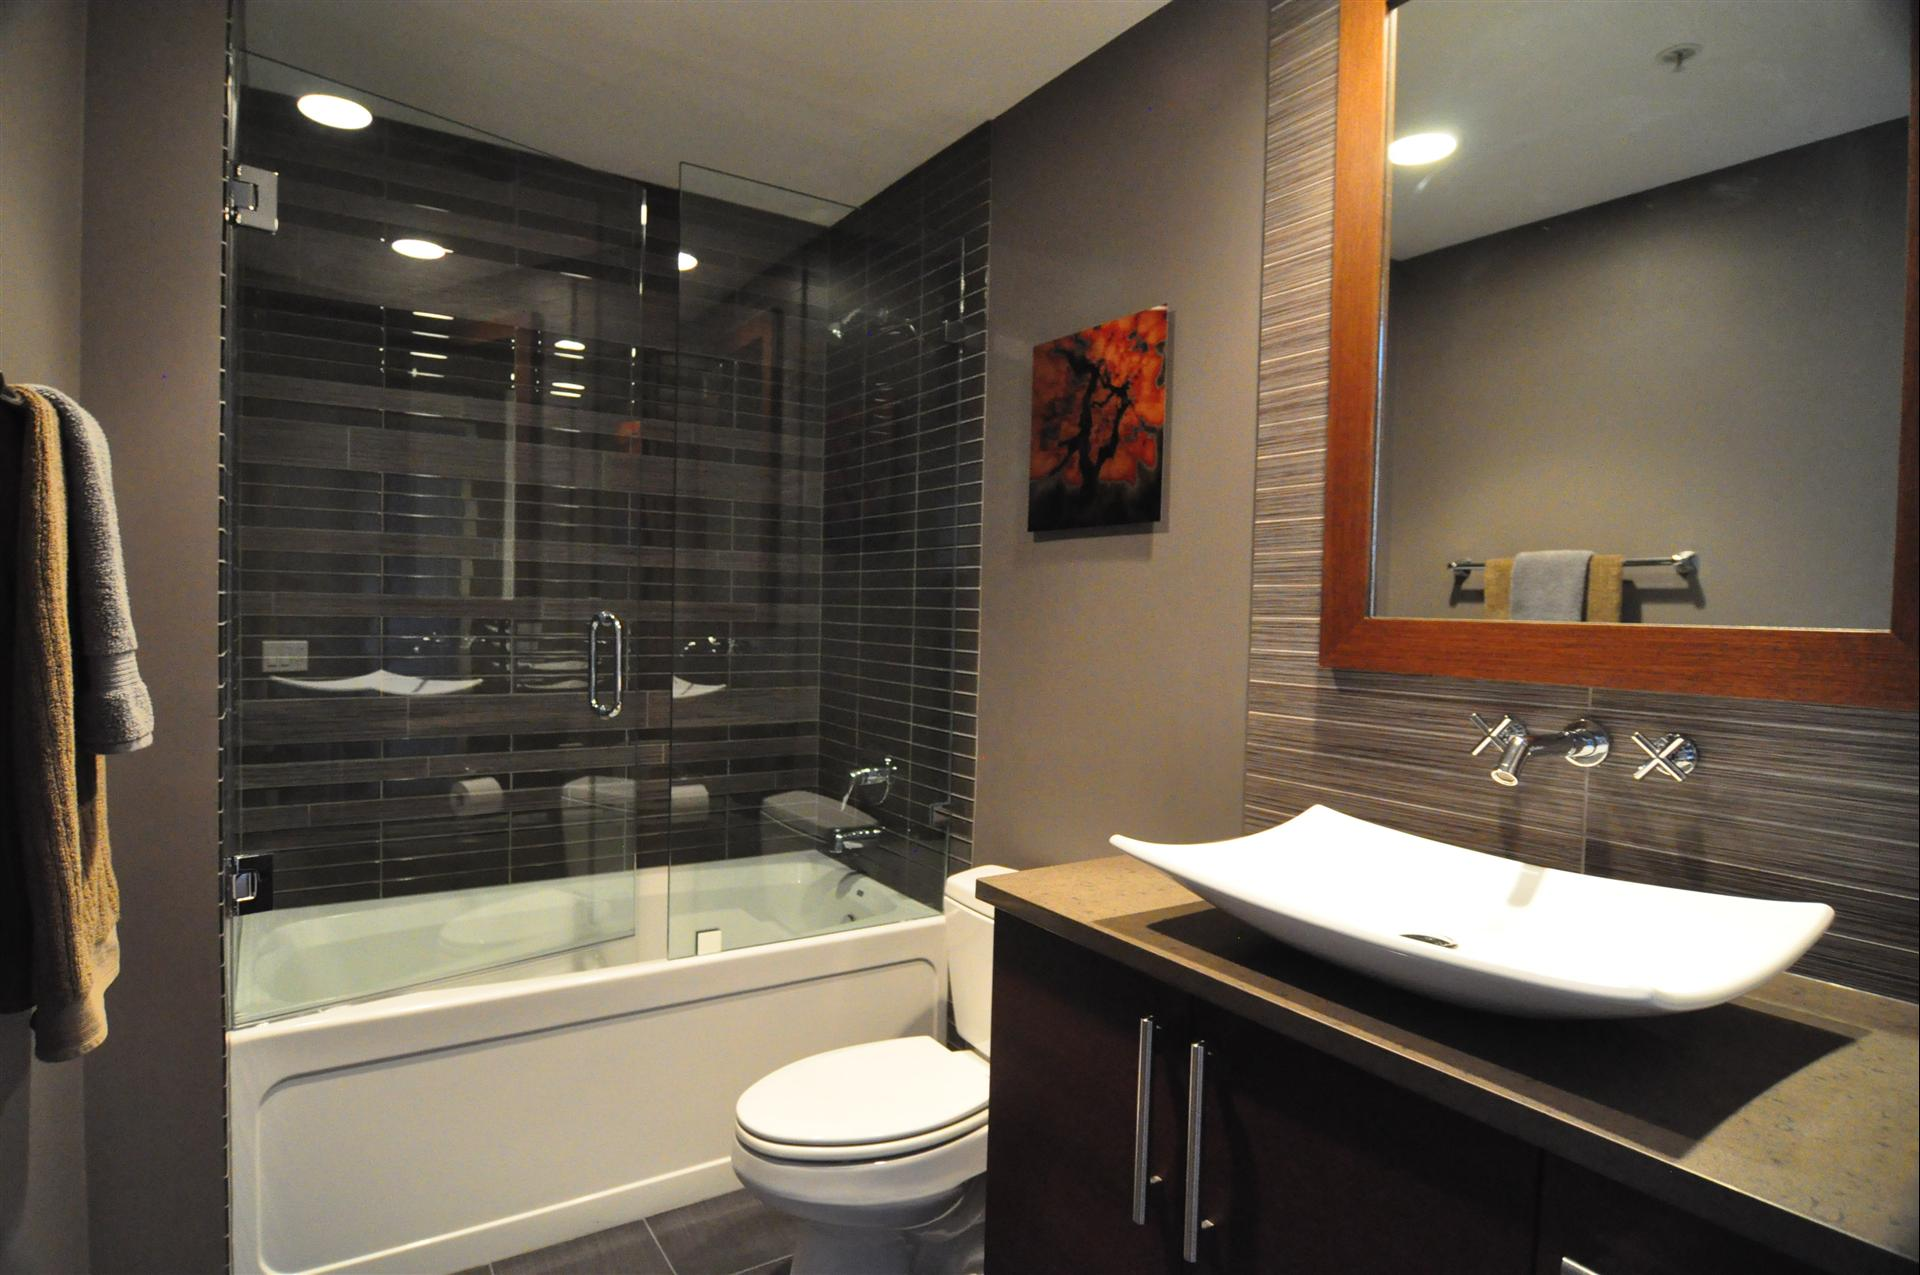 Bathroom Remodeling Services Chicago - Chicago bathroom remodeling company